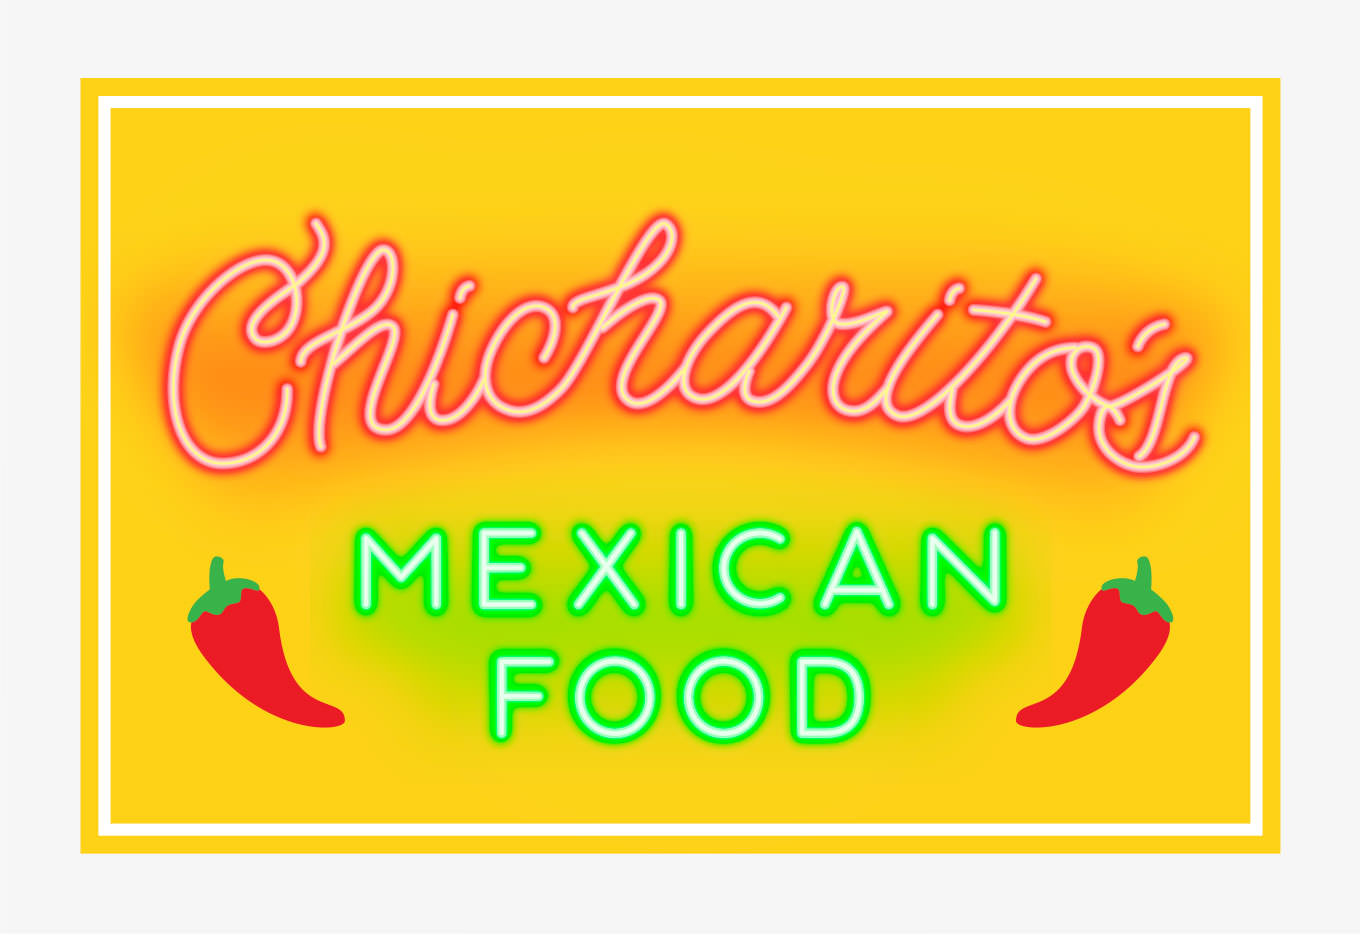 Mascots: Chicharito's Neon Sign